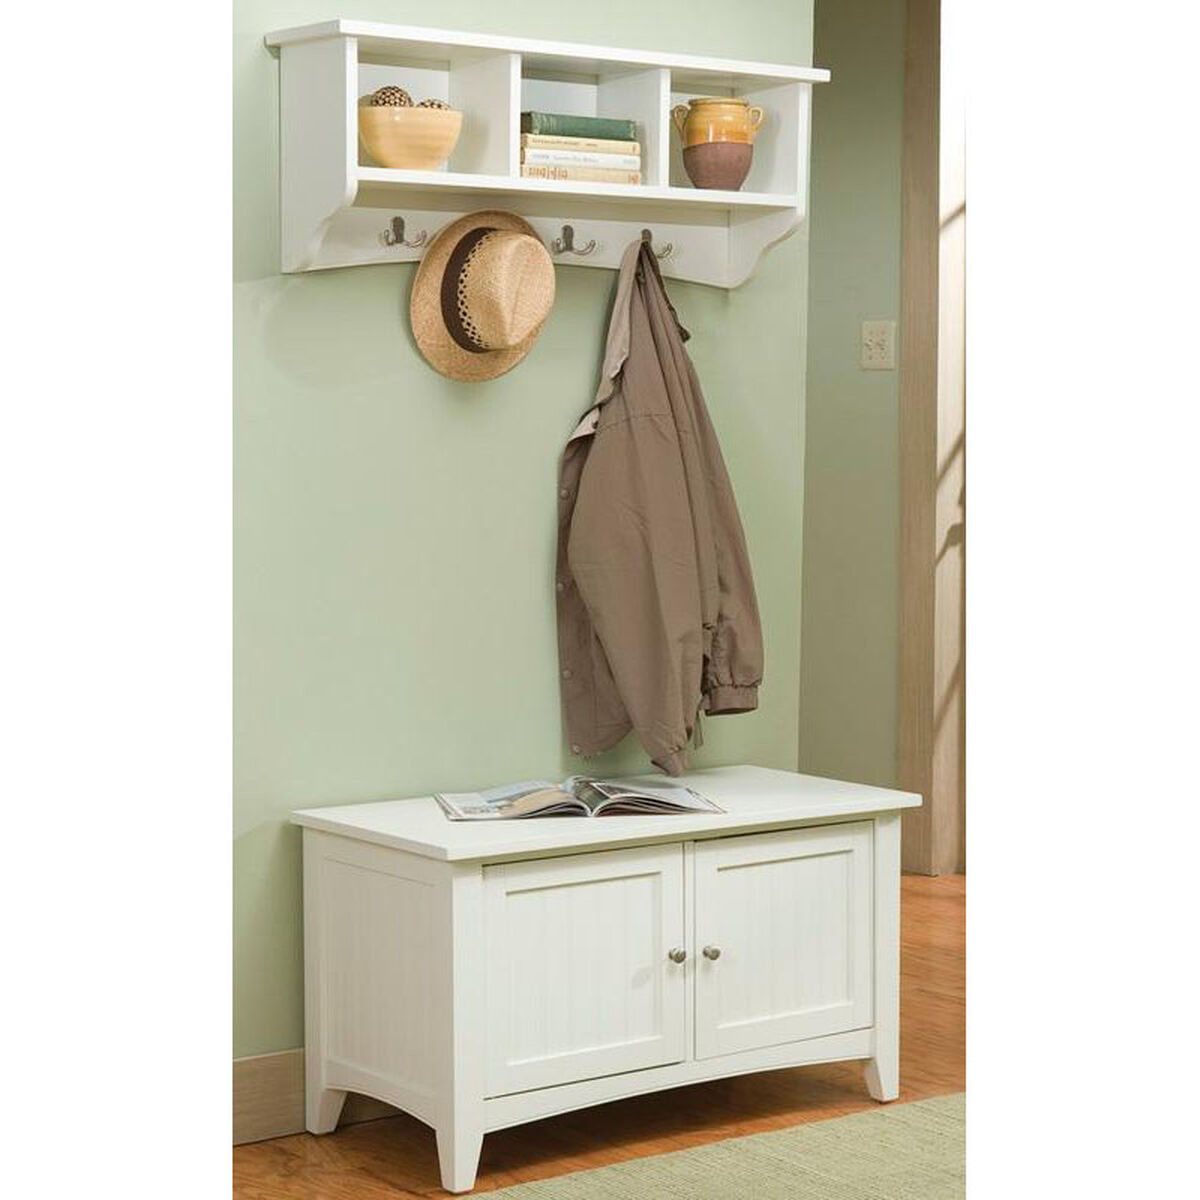 Our Shaker Cottage 2 Piece Hall Tree Set With Cubbies And Storage Bench Ivory Is